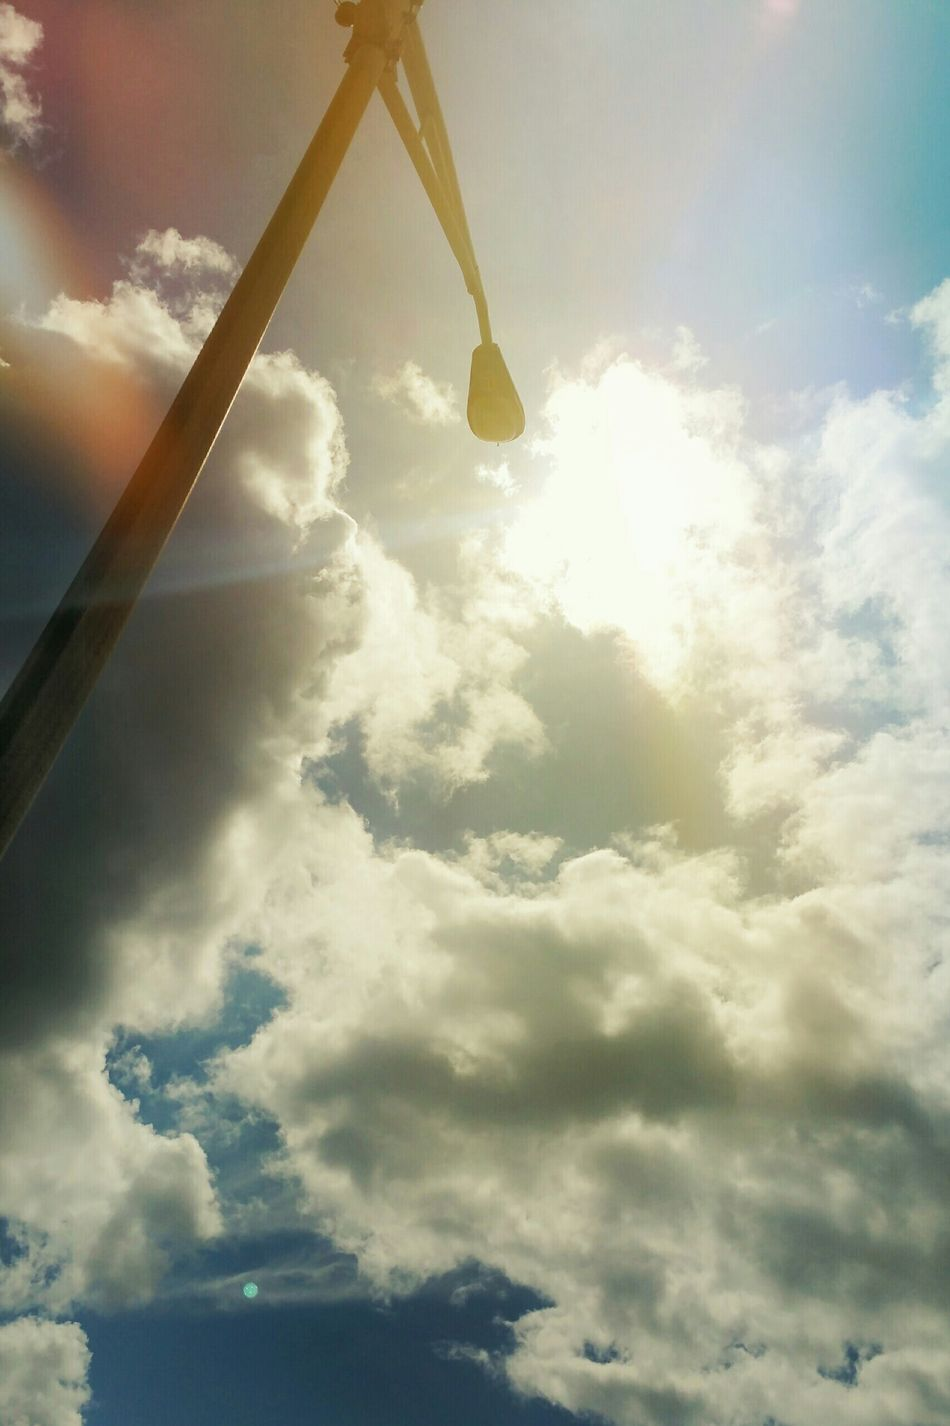 Taking Photos Taking Pictures Sunlight Obscured Extreme Angles Sun And Sky Clouds And Sky Beautiful Sunlight Sunshine ☀